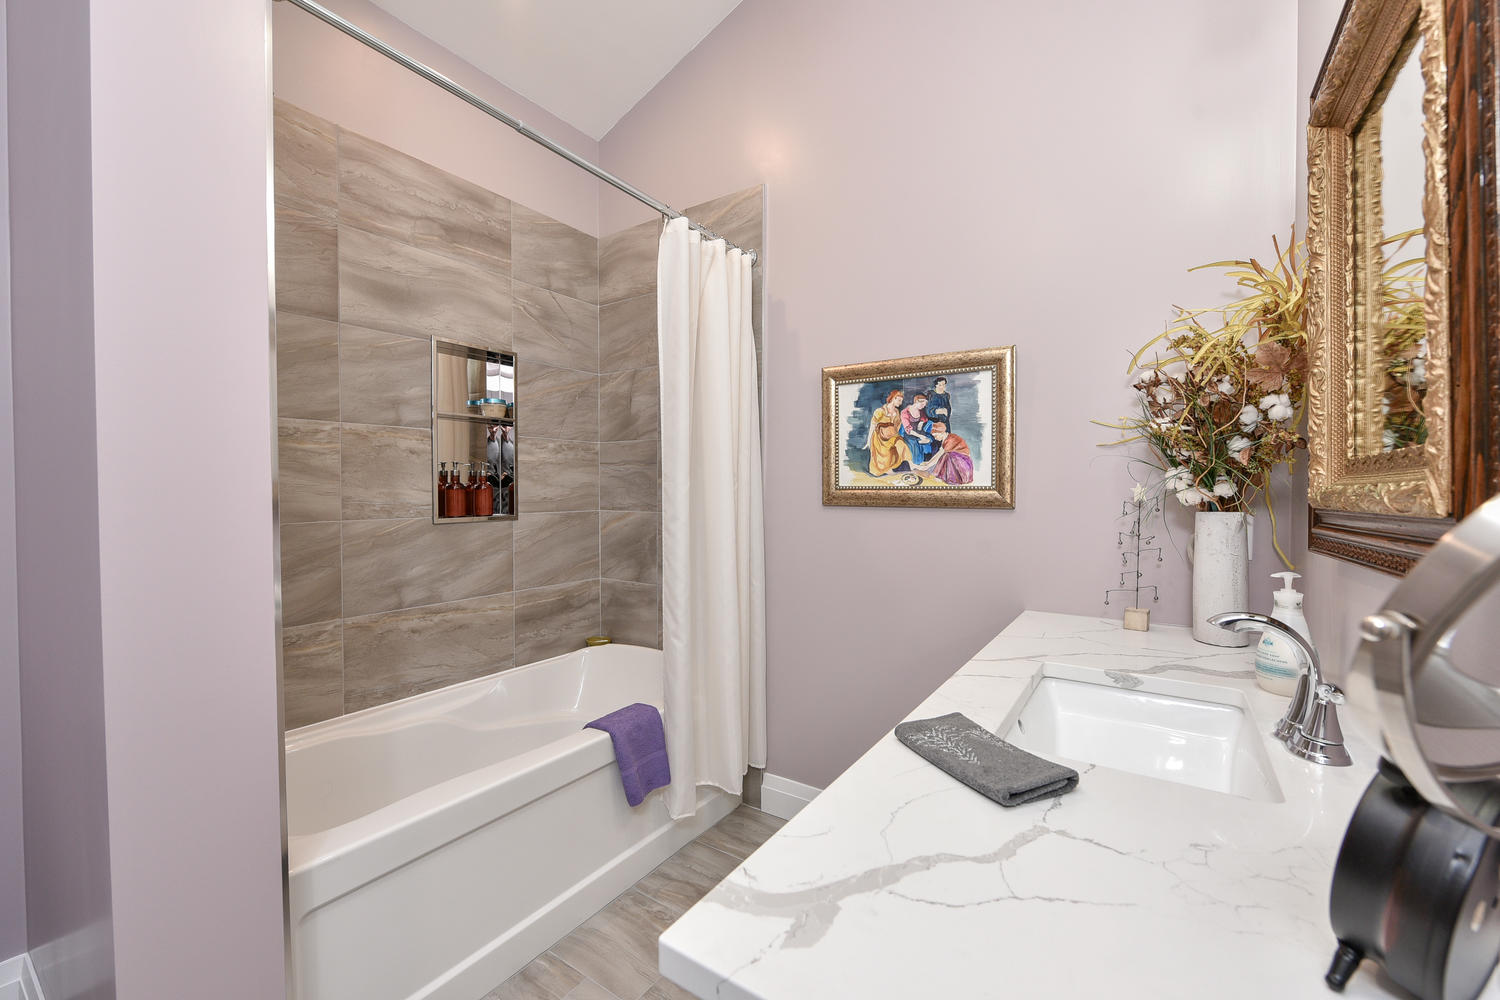 Bathroom - Traditional Family Home Project In Renfrew by Kelly Homes Inc.